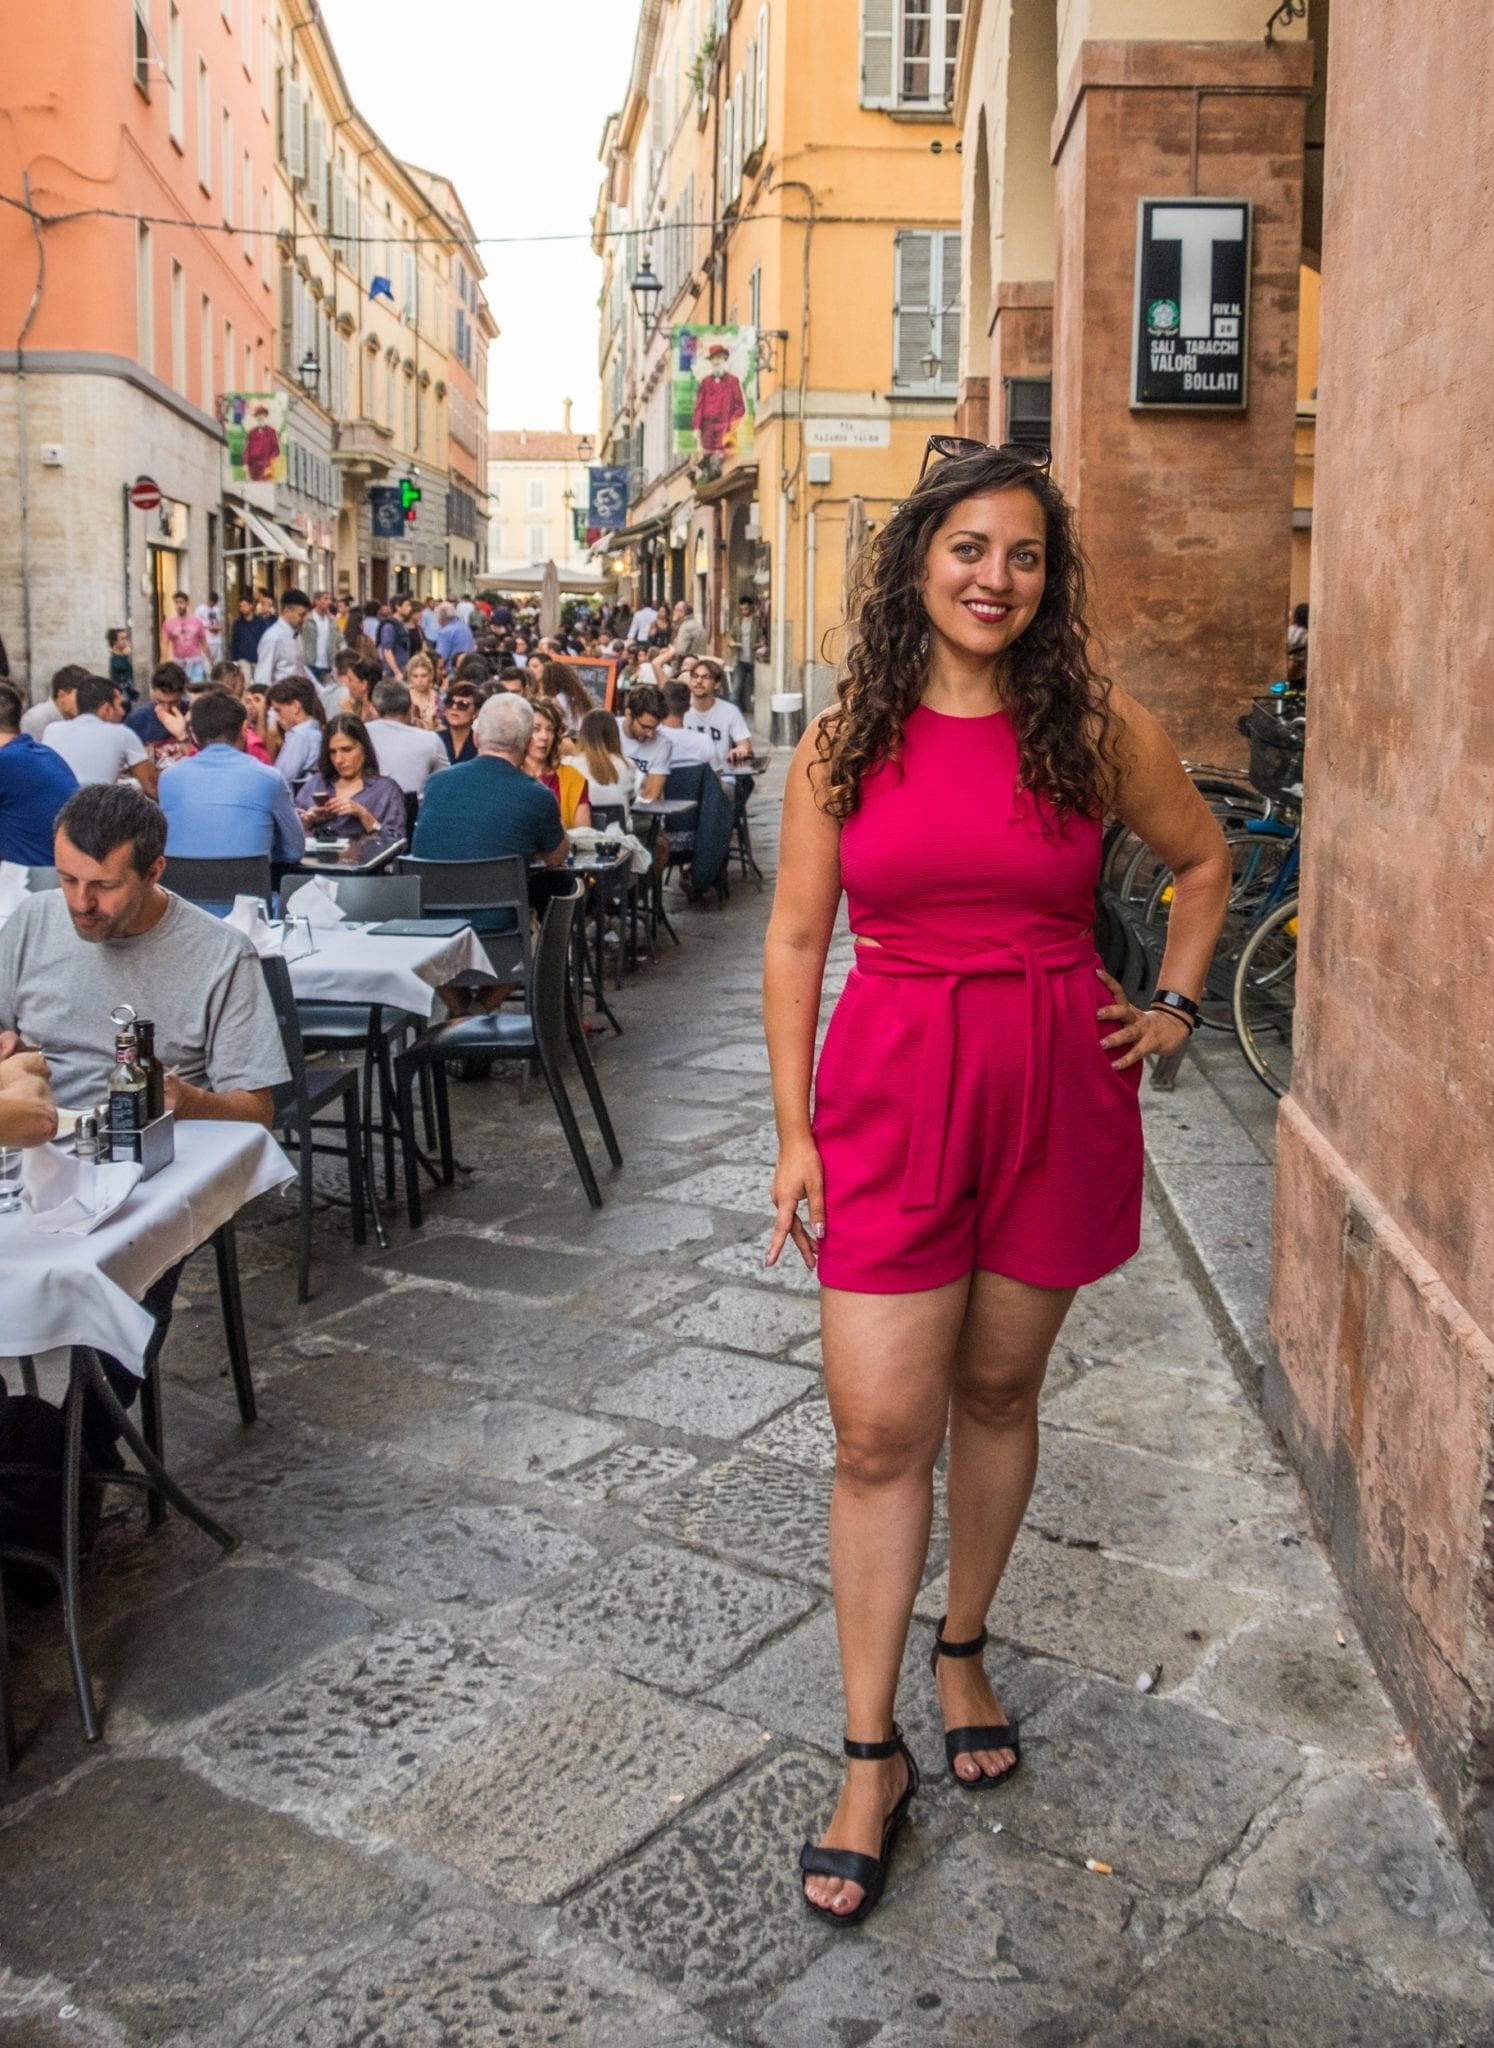 Kate wears a hot pink romper and stands on the street in Parma, next to people sitting down eating at outdoor tables, yellow and pink buildings behind her.